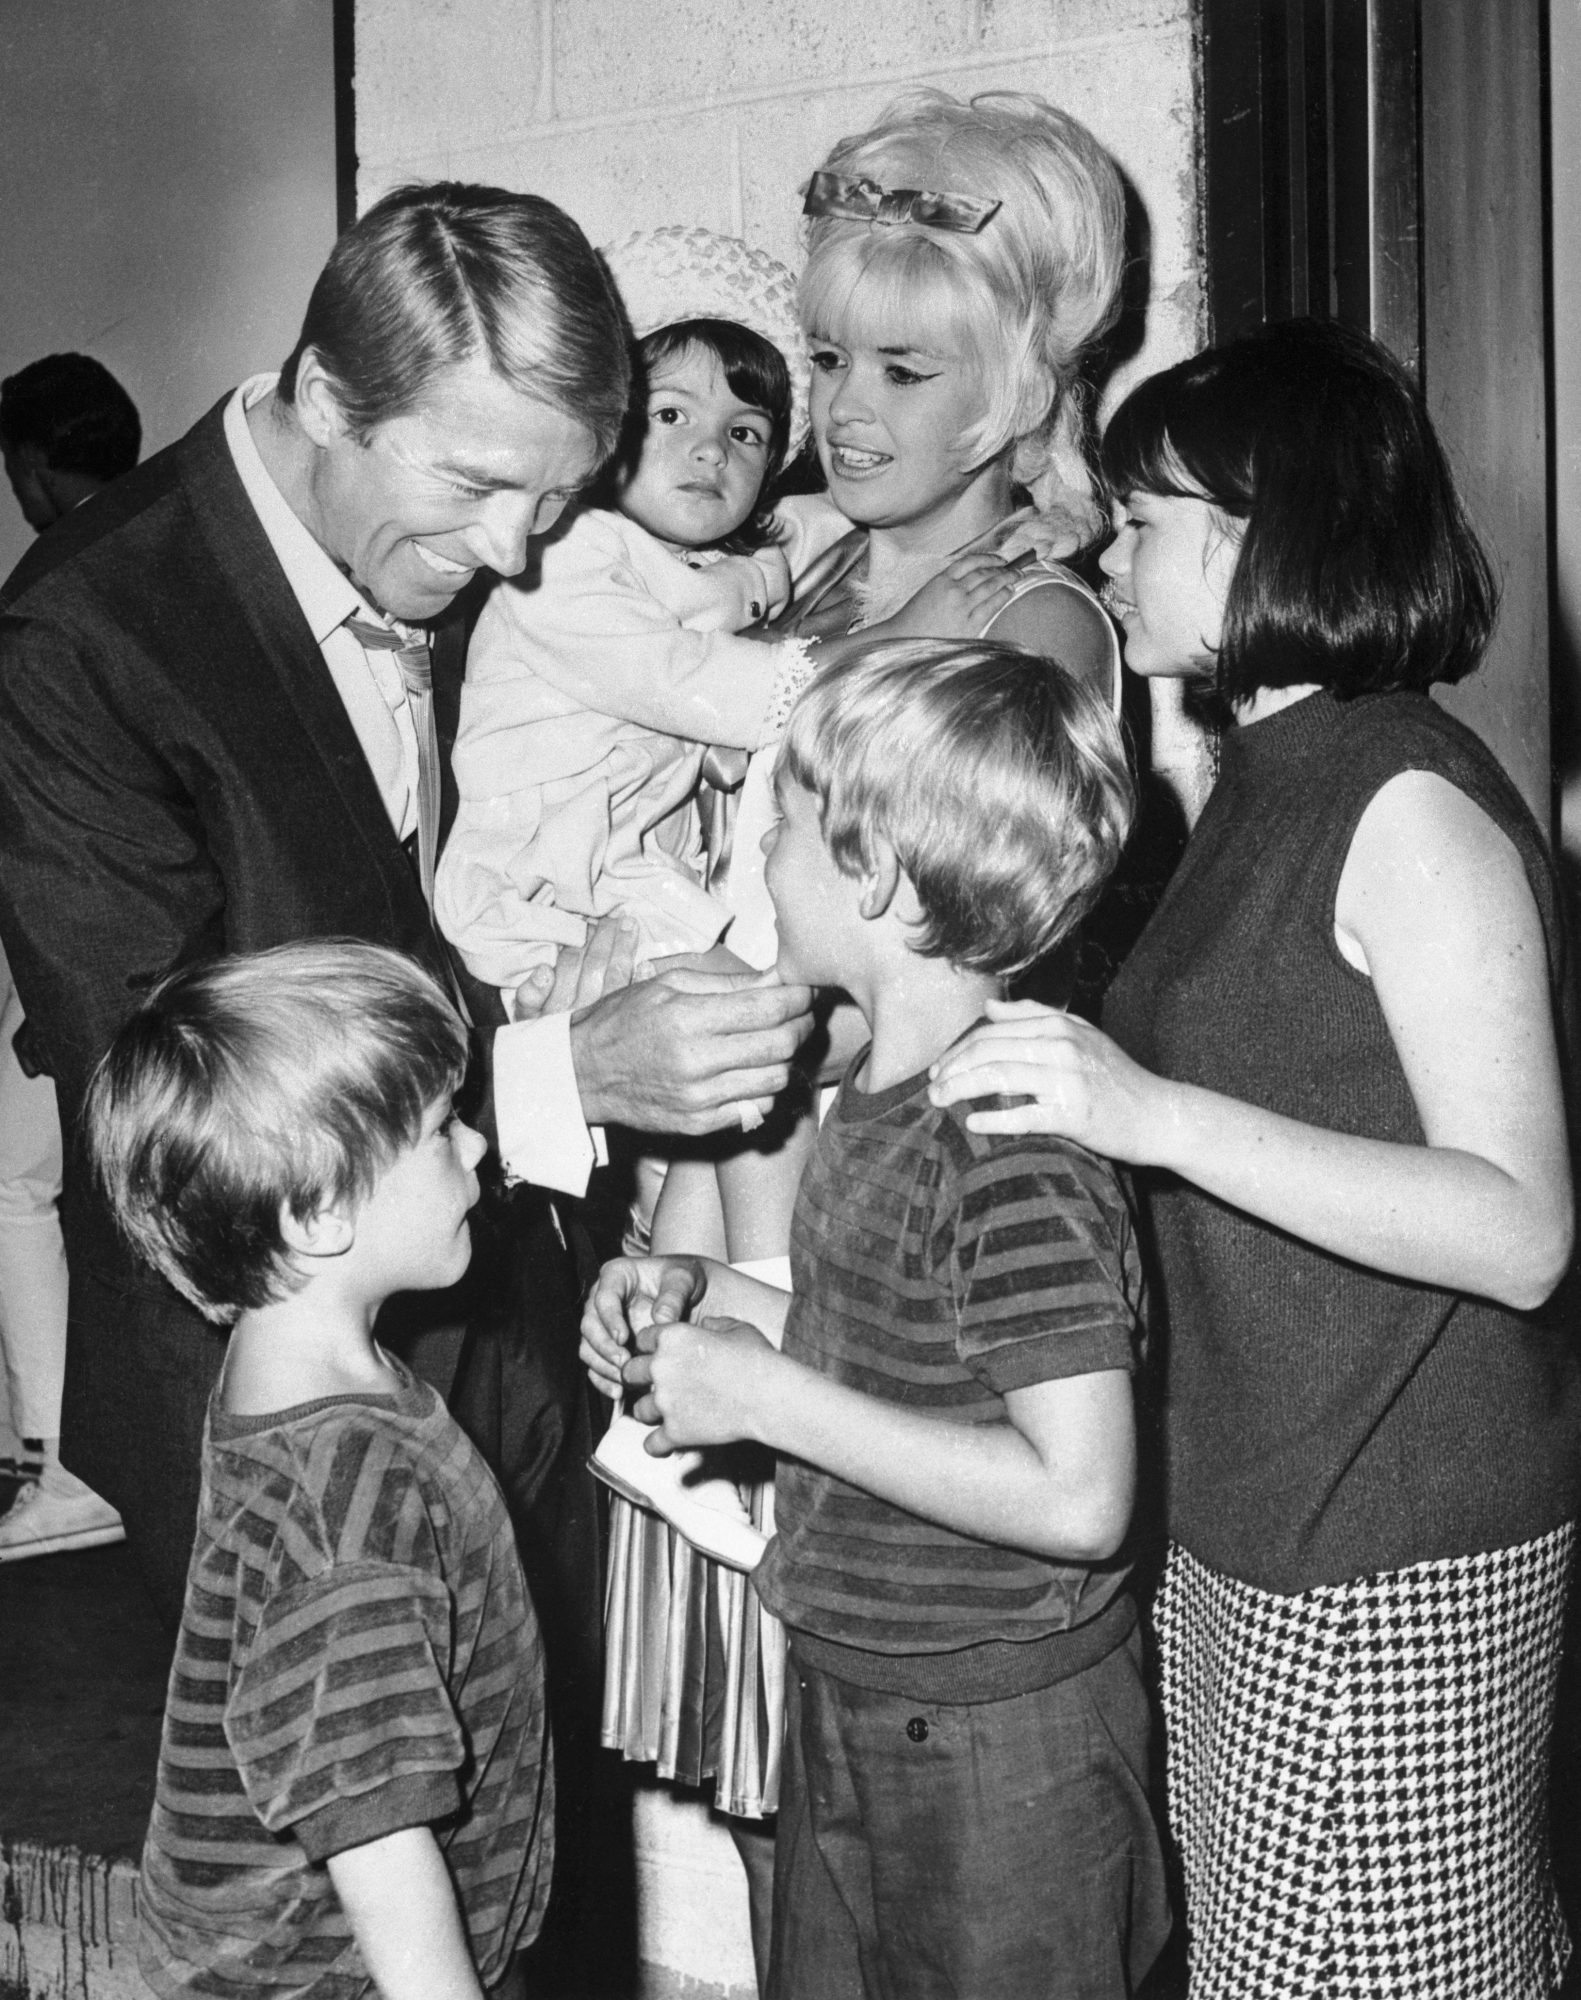 Jayne Mansfield and Mickey Hargitay With Their Children